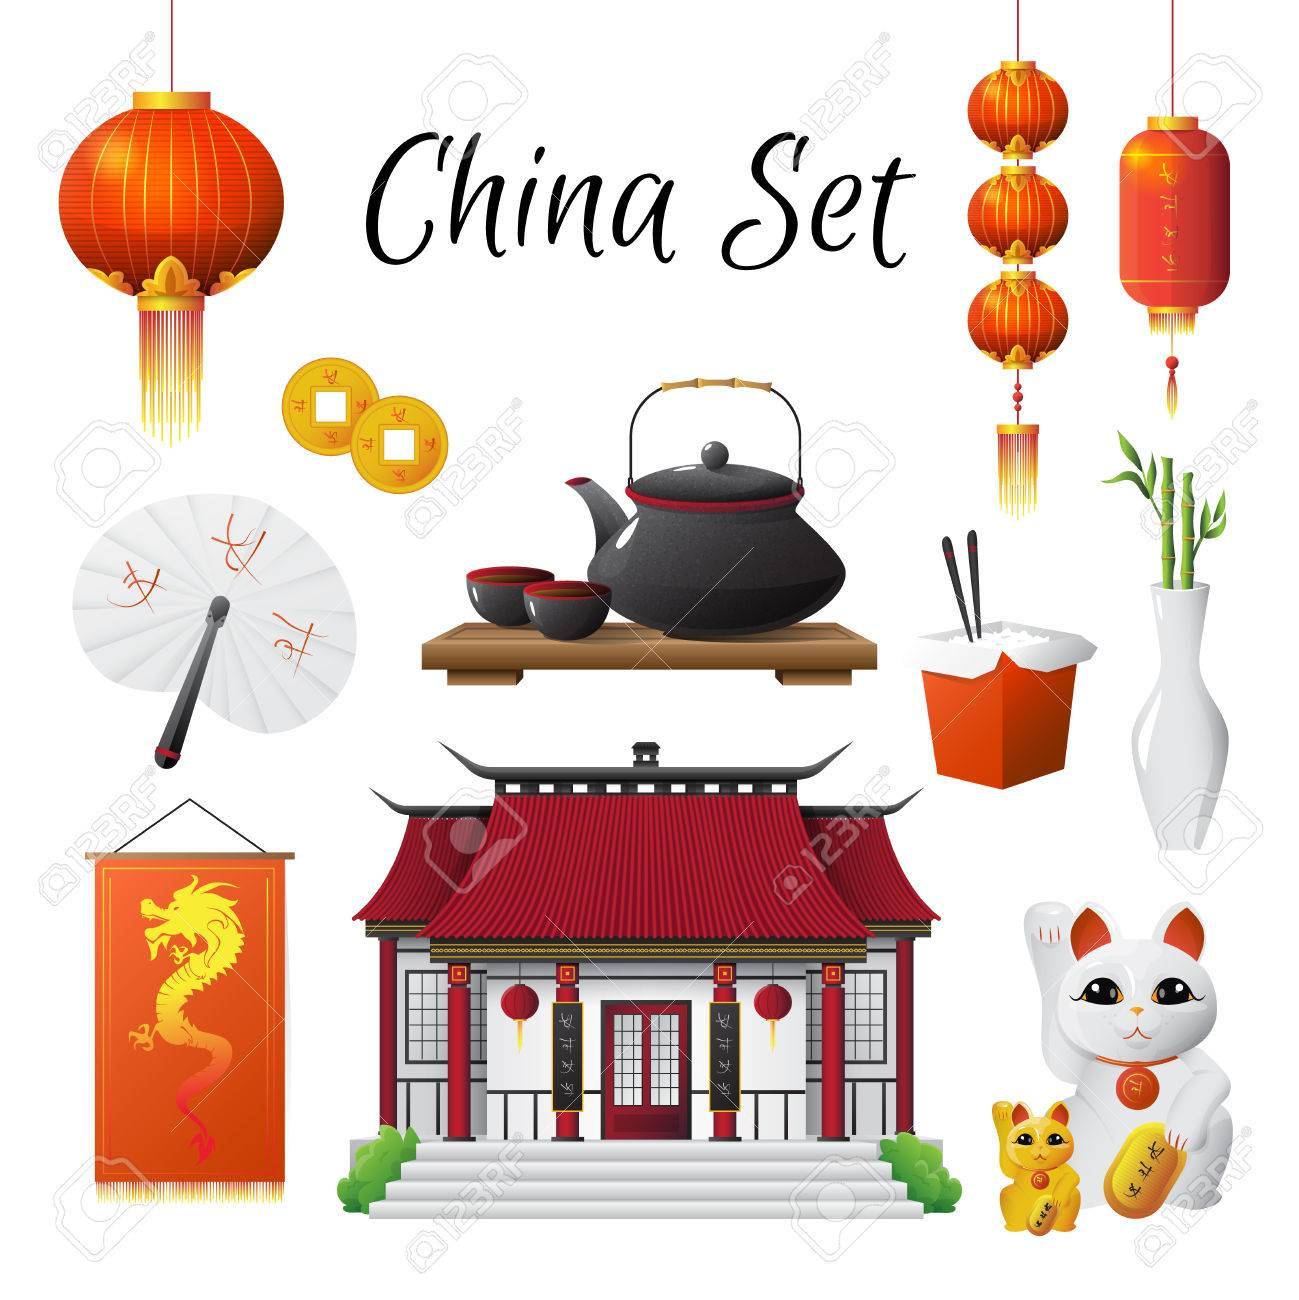 Chinese Culture Classic National Symbols Set With Red Lantern